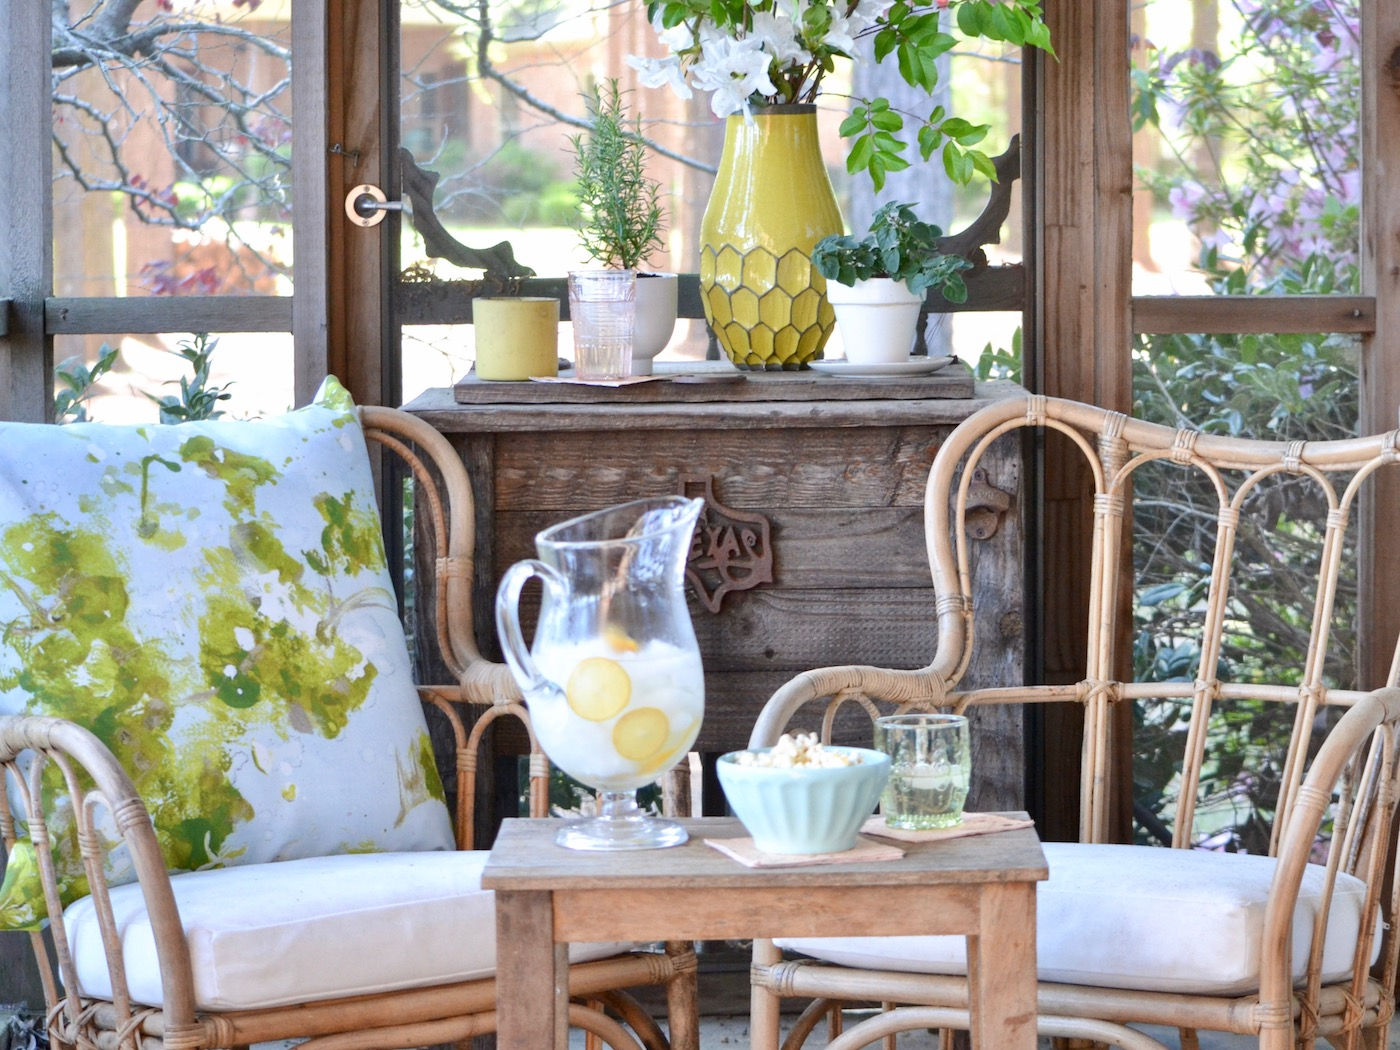 Springy Screened Porch Update // www.thehiveblog.com